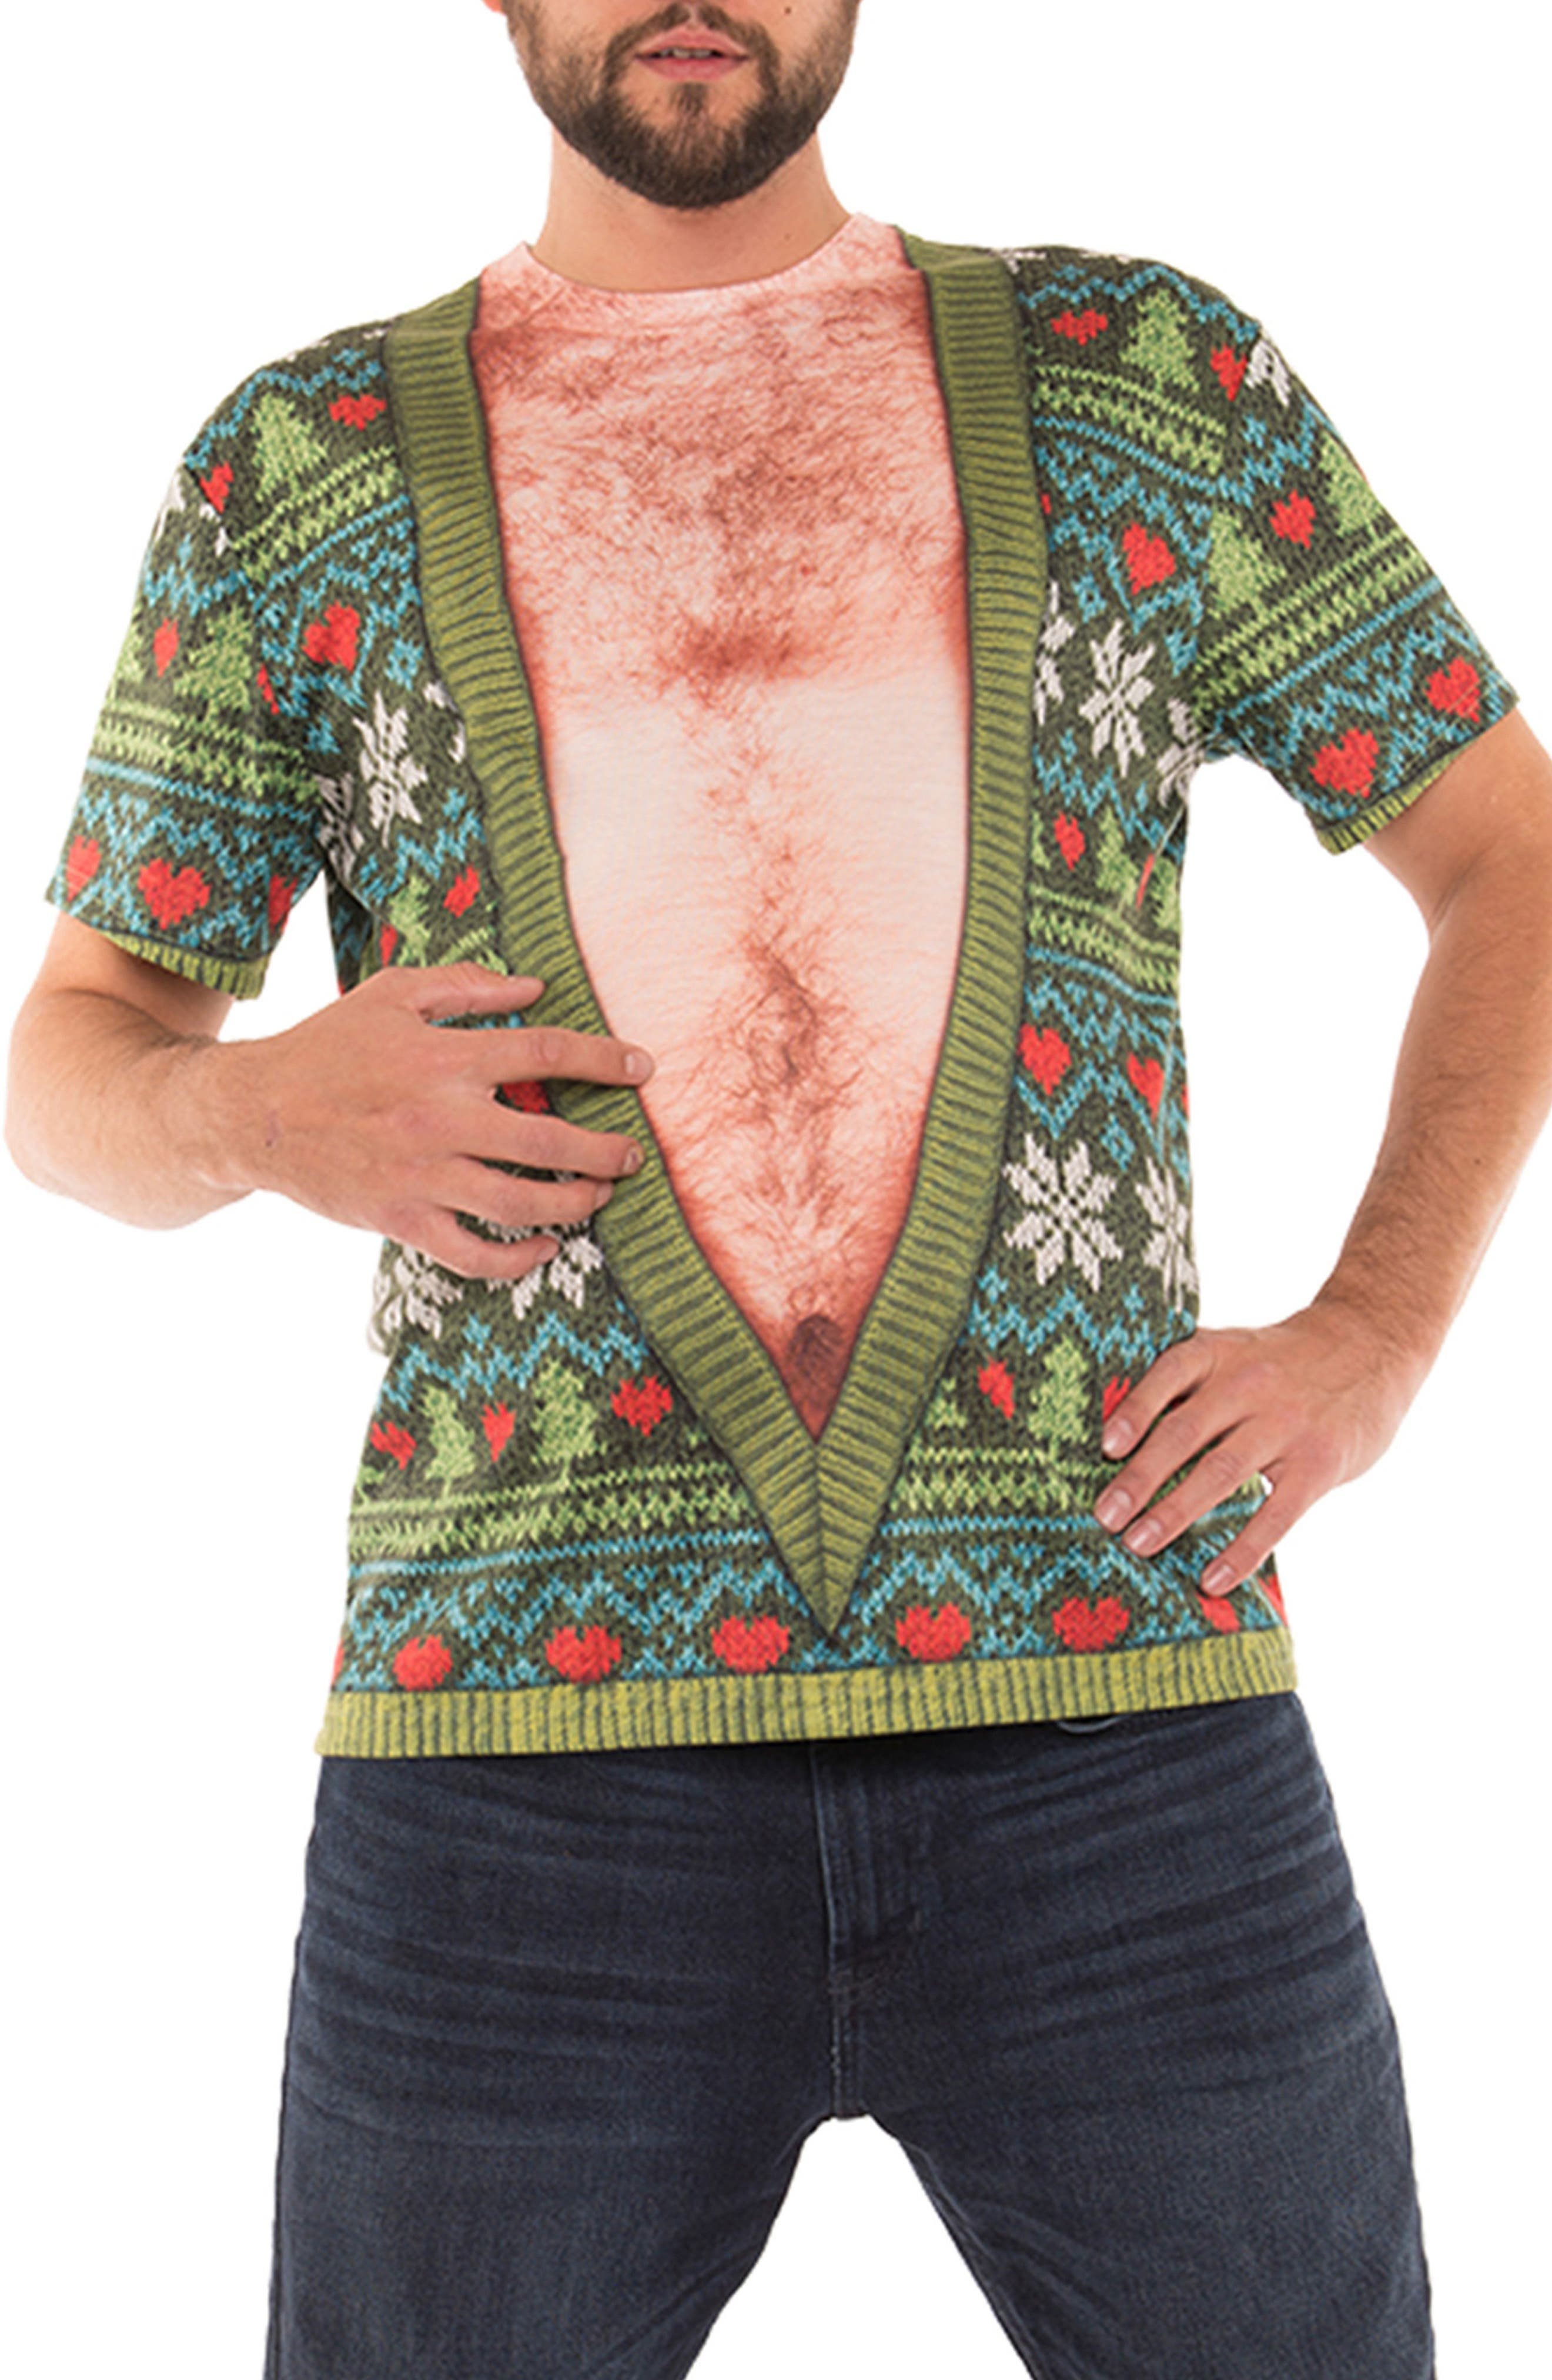 Faux Real Deep-V Ugly Christmas Sweater Costume T-Shirt